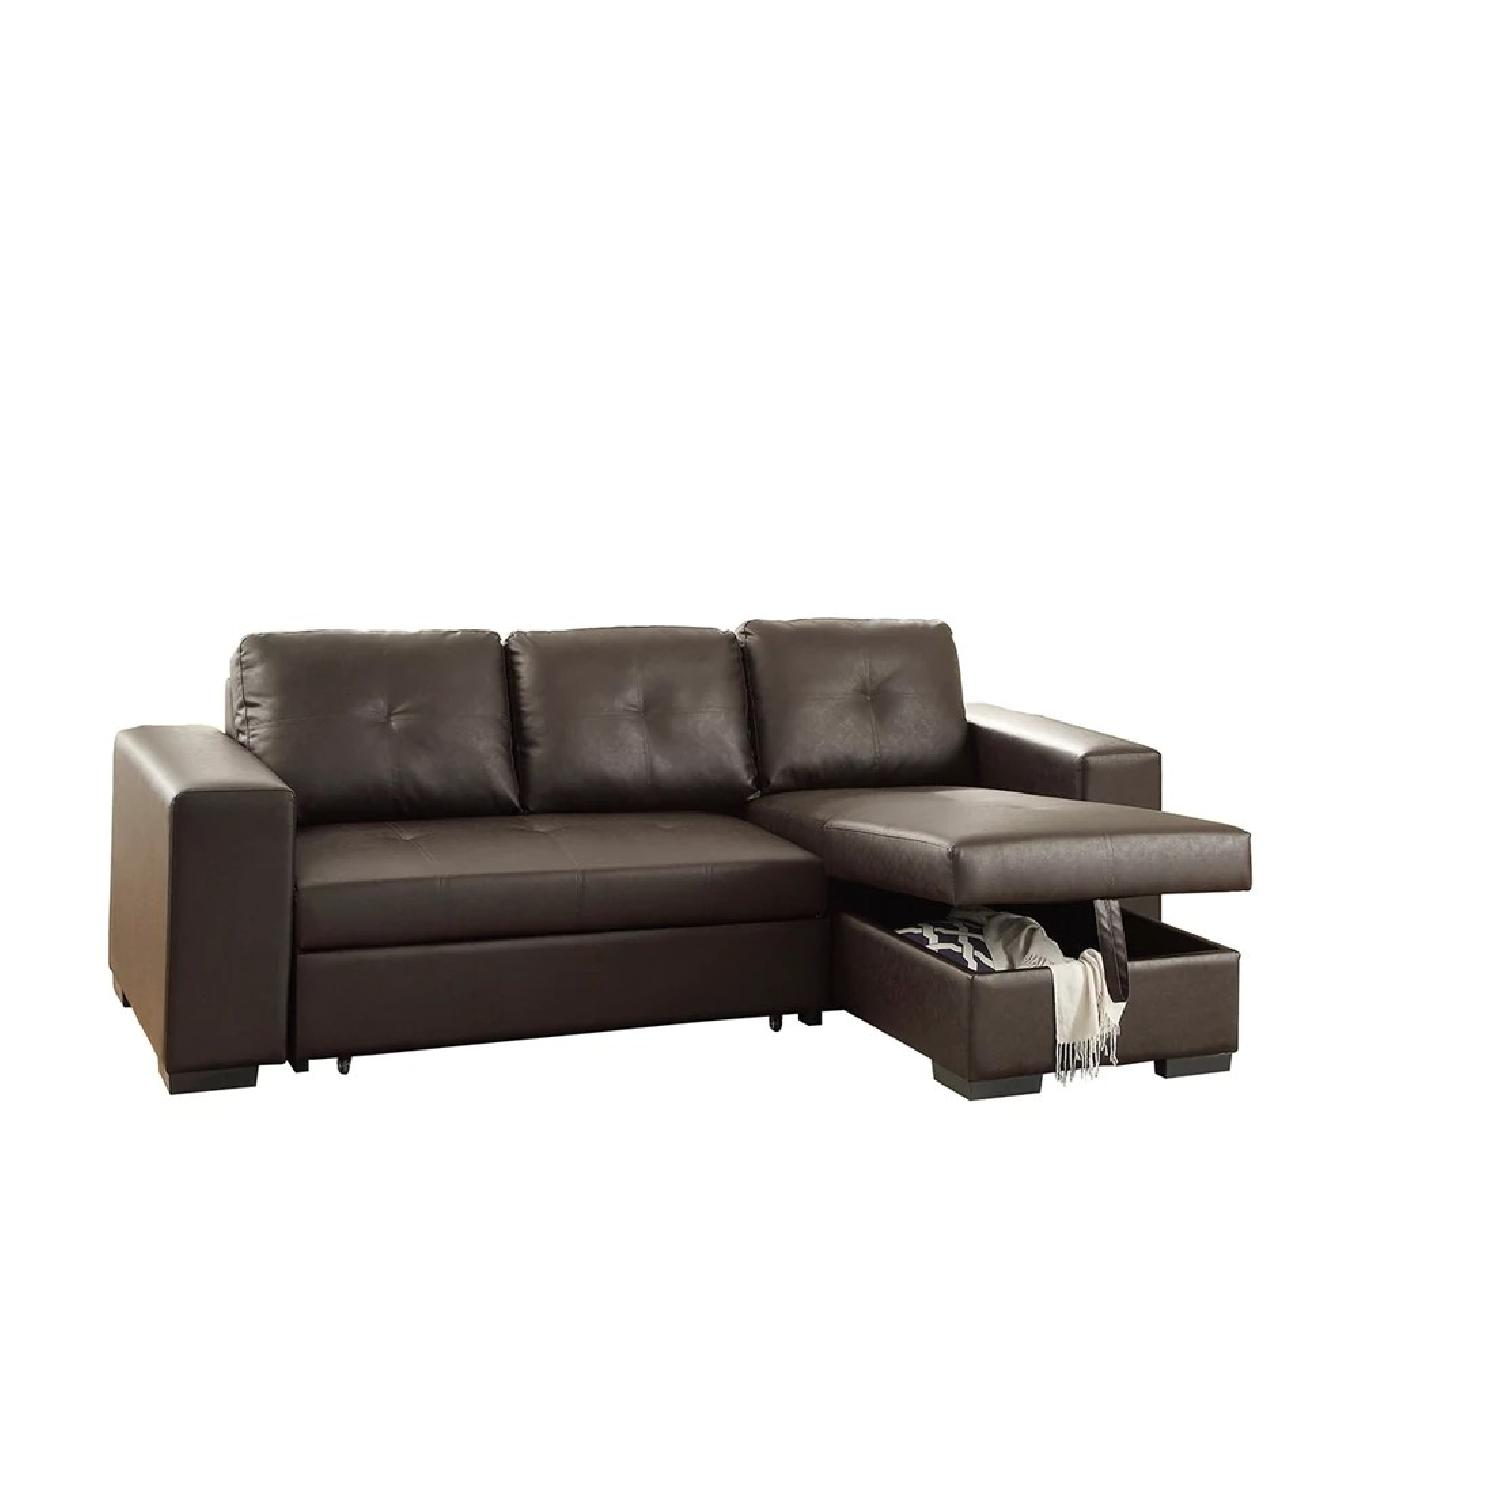 arhaus leather sofa togo copy uk garner tufted sectional in libby saddle